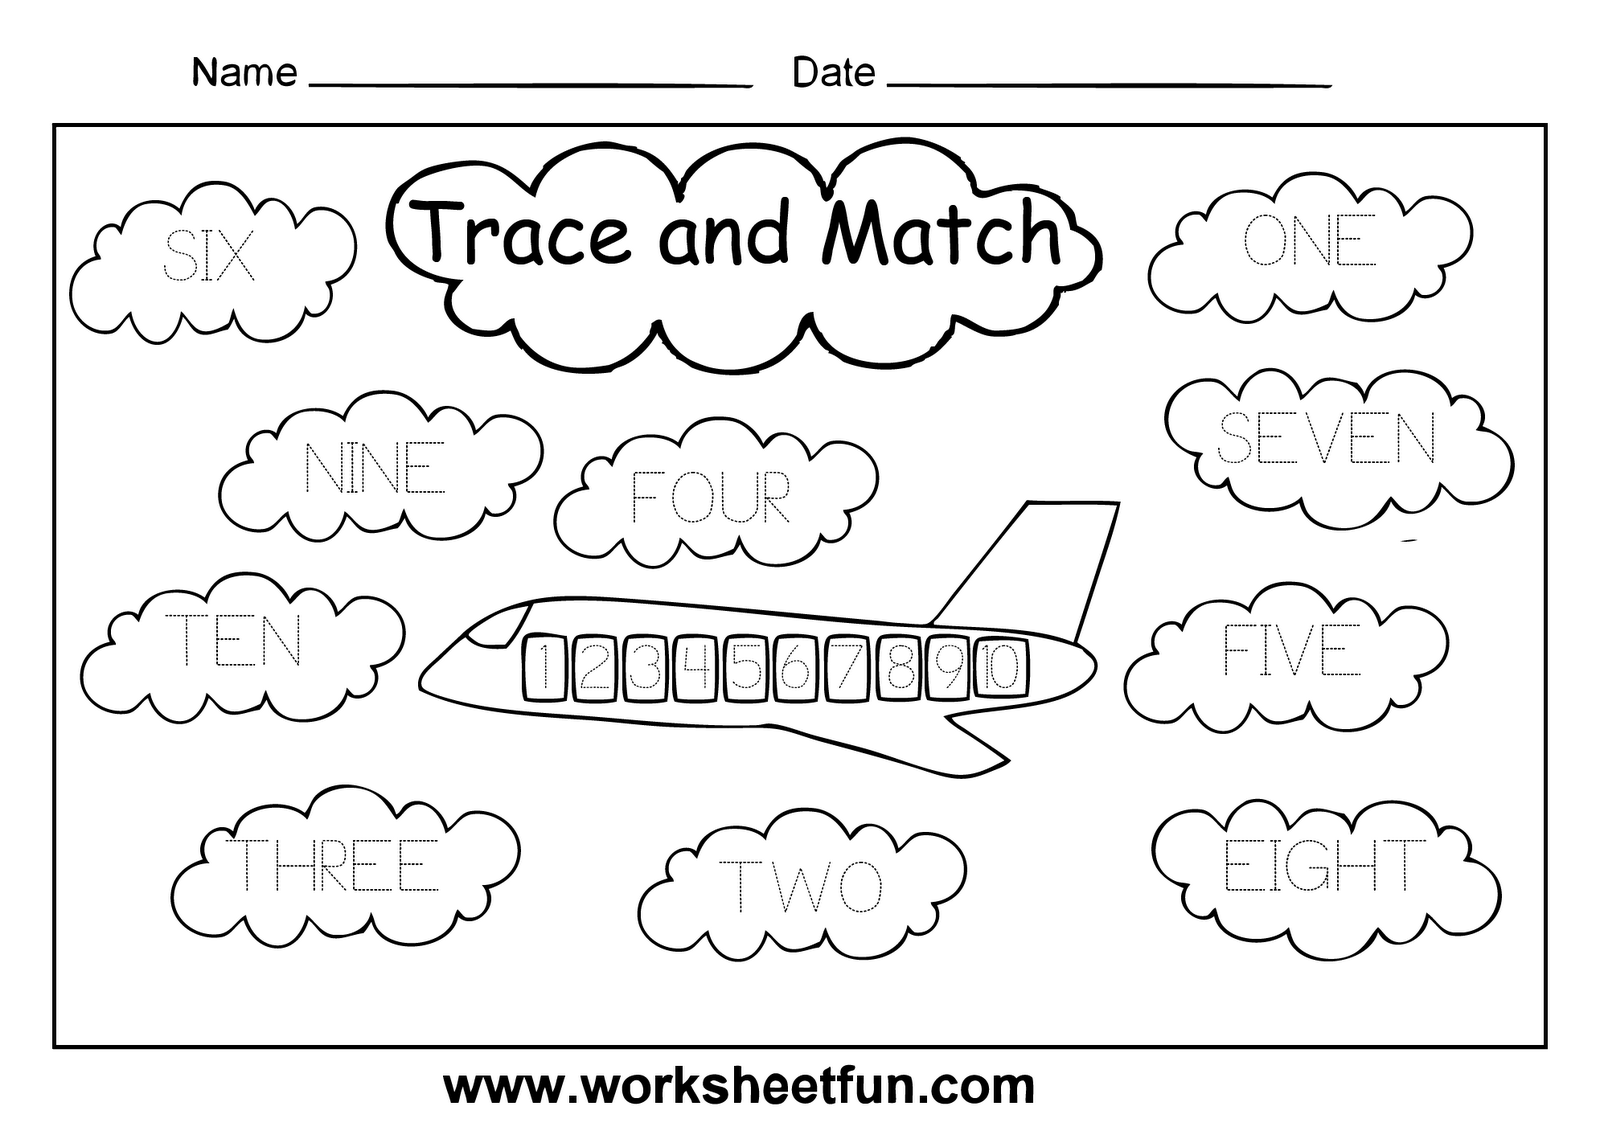 Weirdmailus  Seductive Numbers Worksheet    Narrativamente With Goodlooking Second Grade English Worksheets Besides Roles Of The President Worksheet Furthermore The Chemistry Of Life Worksheet With Amazing They Re Their There Worksheet Also Place Value Worksheets For Nd Grade In Addition Context Clues Worksheets Nd Grade And Atomic Number Worksheet As Well As  Dimensional Shapes Worksheets Additionally Acceleration Worksheet With Answers From Narrativamentecom With Weirdmailus  Goodlooking Numbers Worksheet    Narrativamente With Amazing Second Grade English Worksheets Besides Roles Of The President Worksheet Furthermore The Chemistry Of Life Worksheet And Seductive They Re Their There Worksheet Also Place Value Worksheets For Nd Grade In Addition Context Clues Worksheets Nd Grade From Narrativamentecom